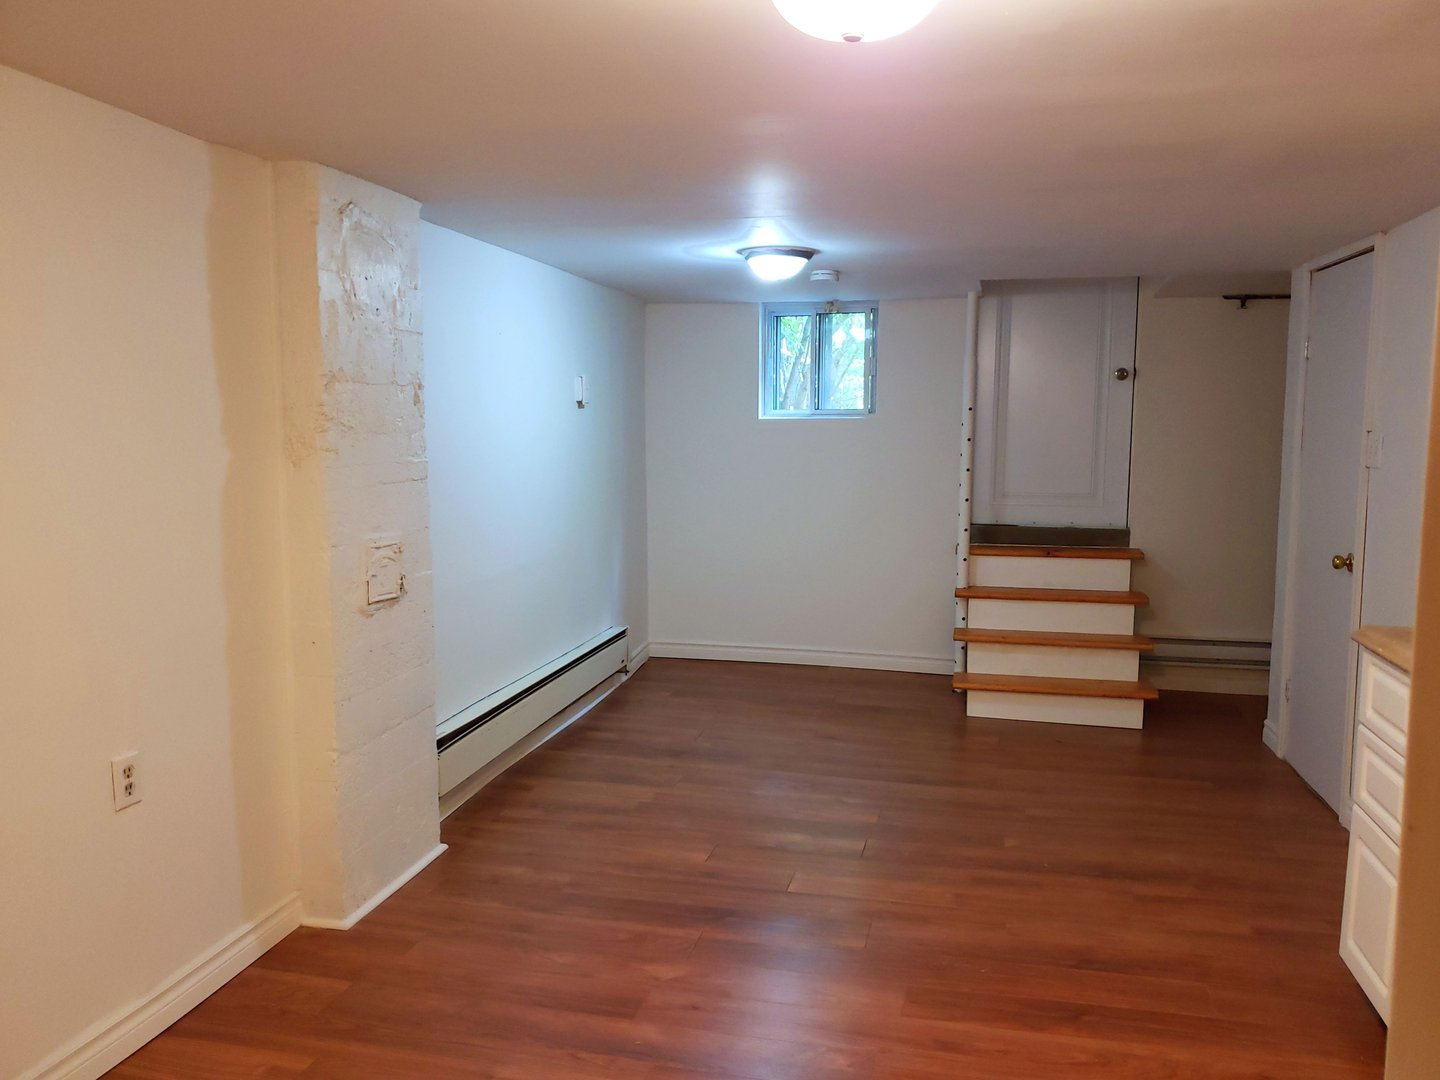 Apartment for rent at 4649 Avenue Clanranald, Montréal, QC. This is the empty room with hardwood floor and natural light.